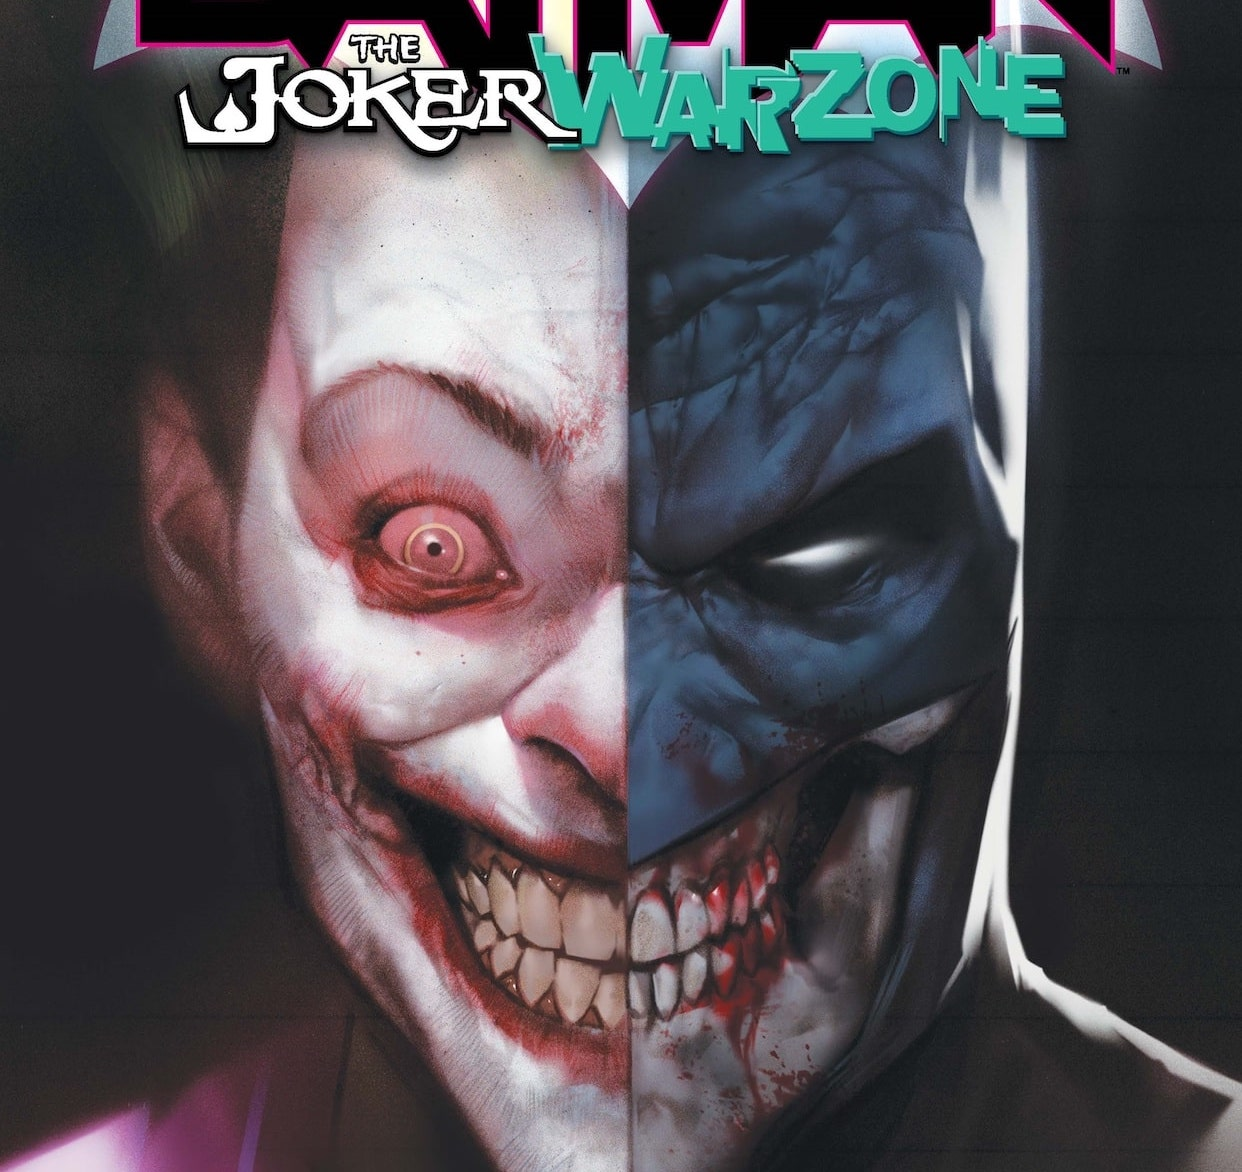 """Enter the """"Joker war zone"""" with short stories featuring many Batman characters."""